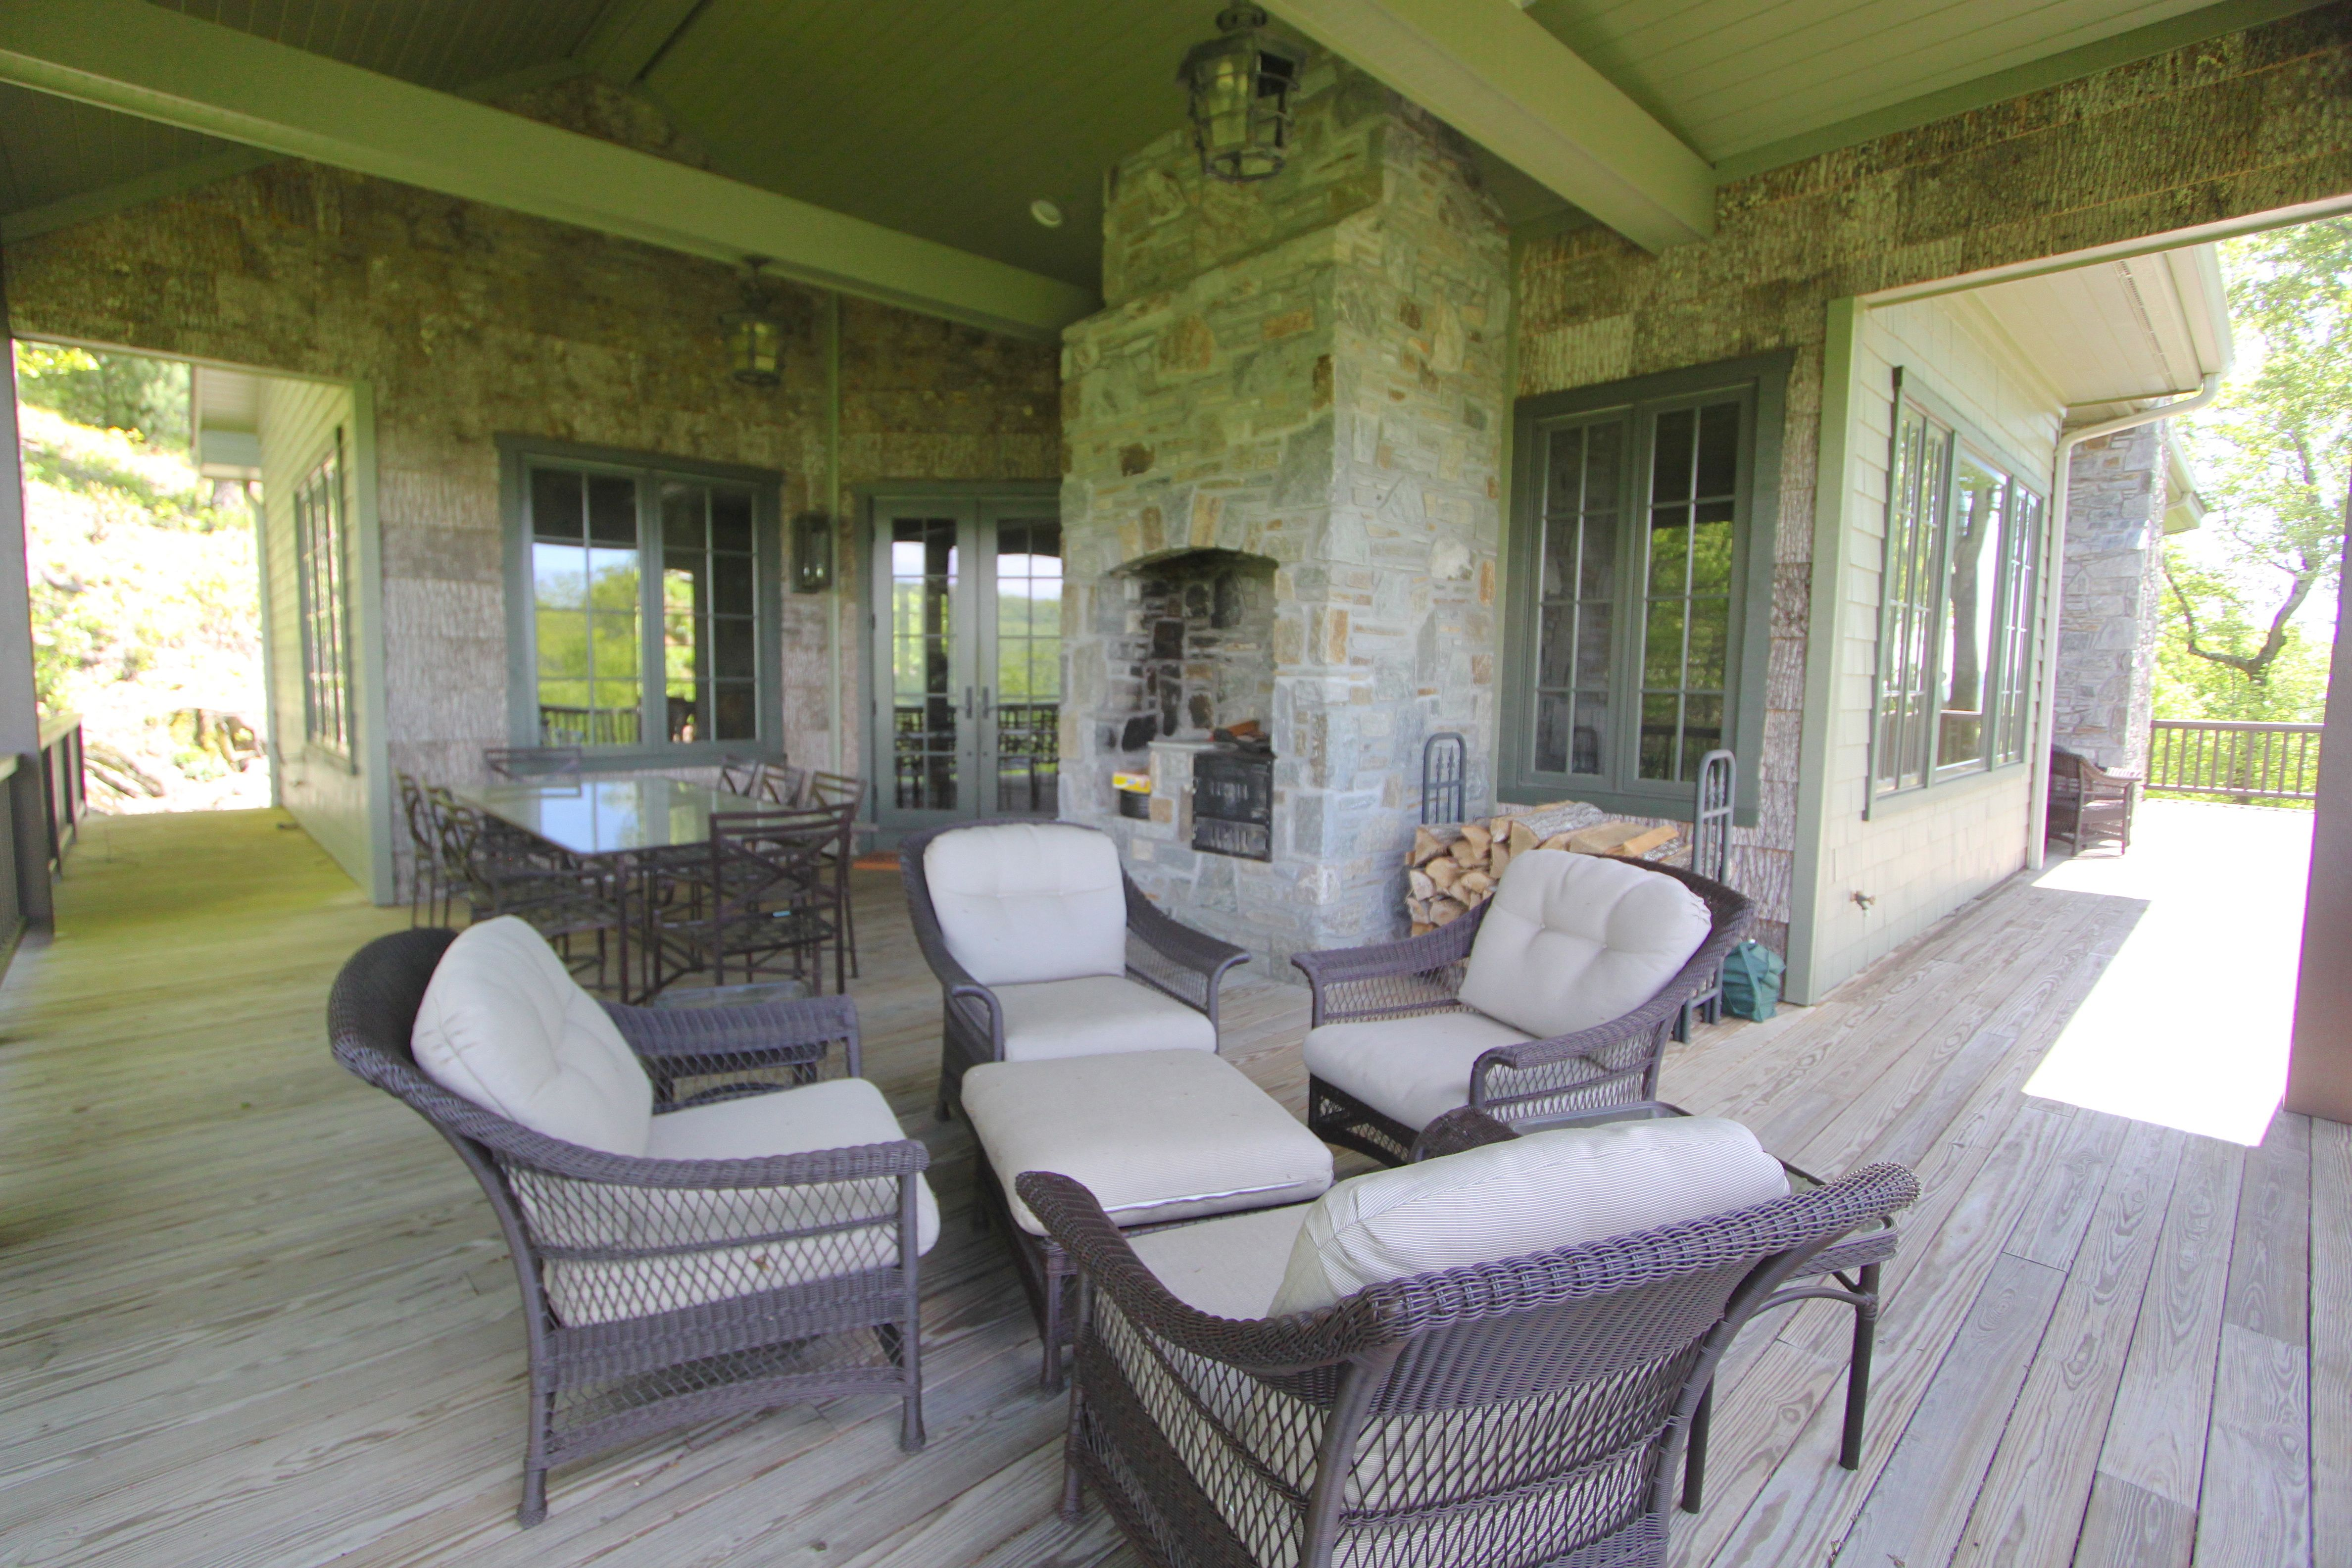 Integrated outdoor fireplace, perfect for cooking or relaxing in the cool mountain air of Blowing Rock!